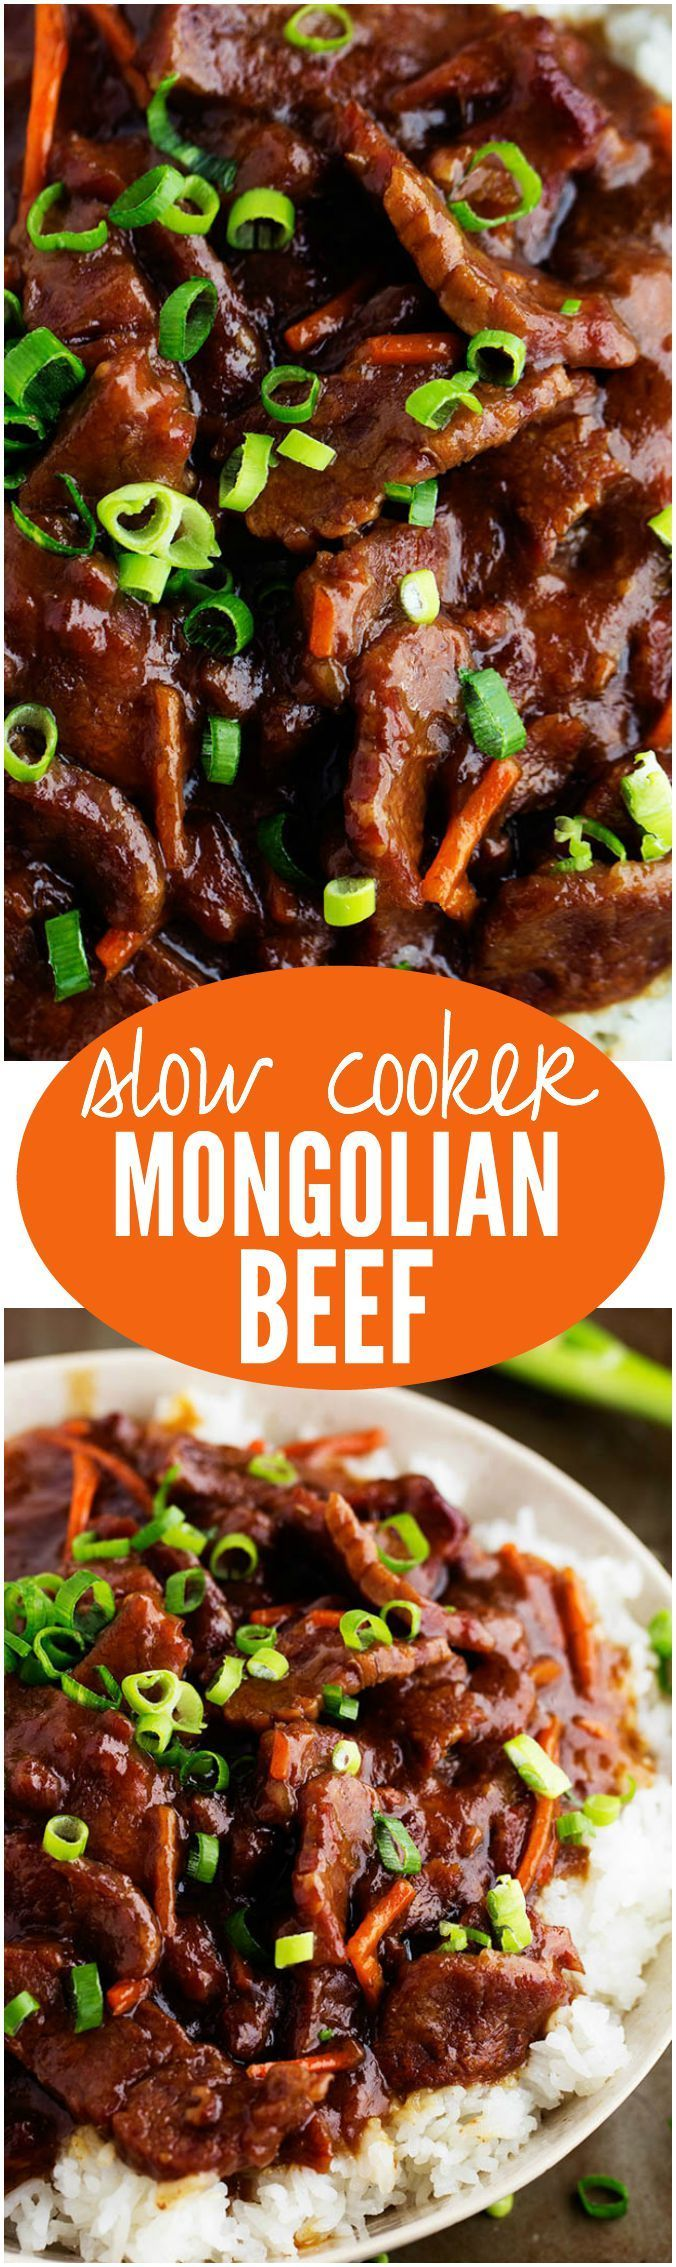 This Slow Cooker Mongolian Beef is melt in your mouth tender and has Amazing flavor!